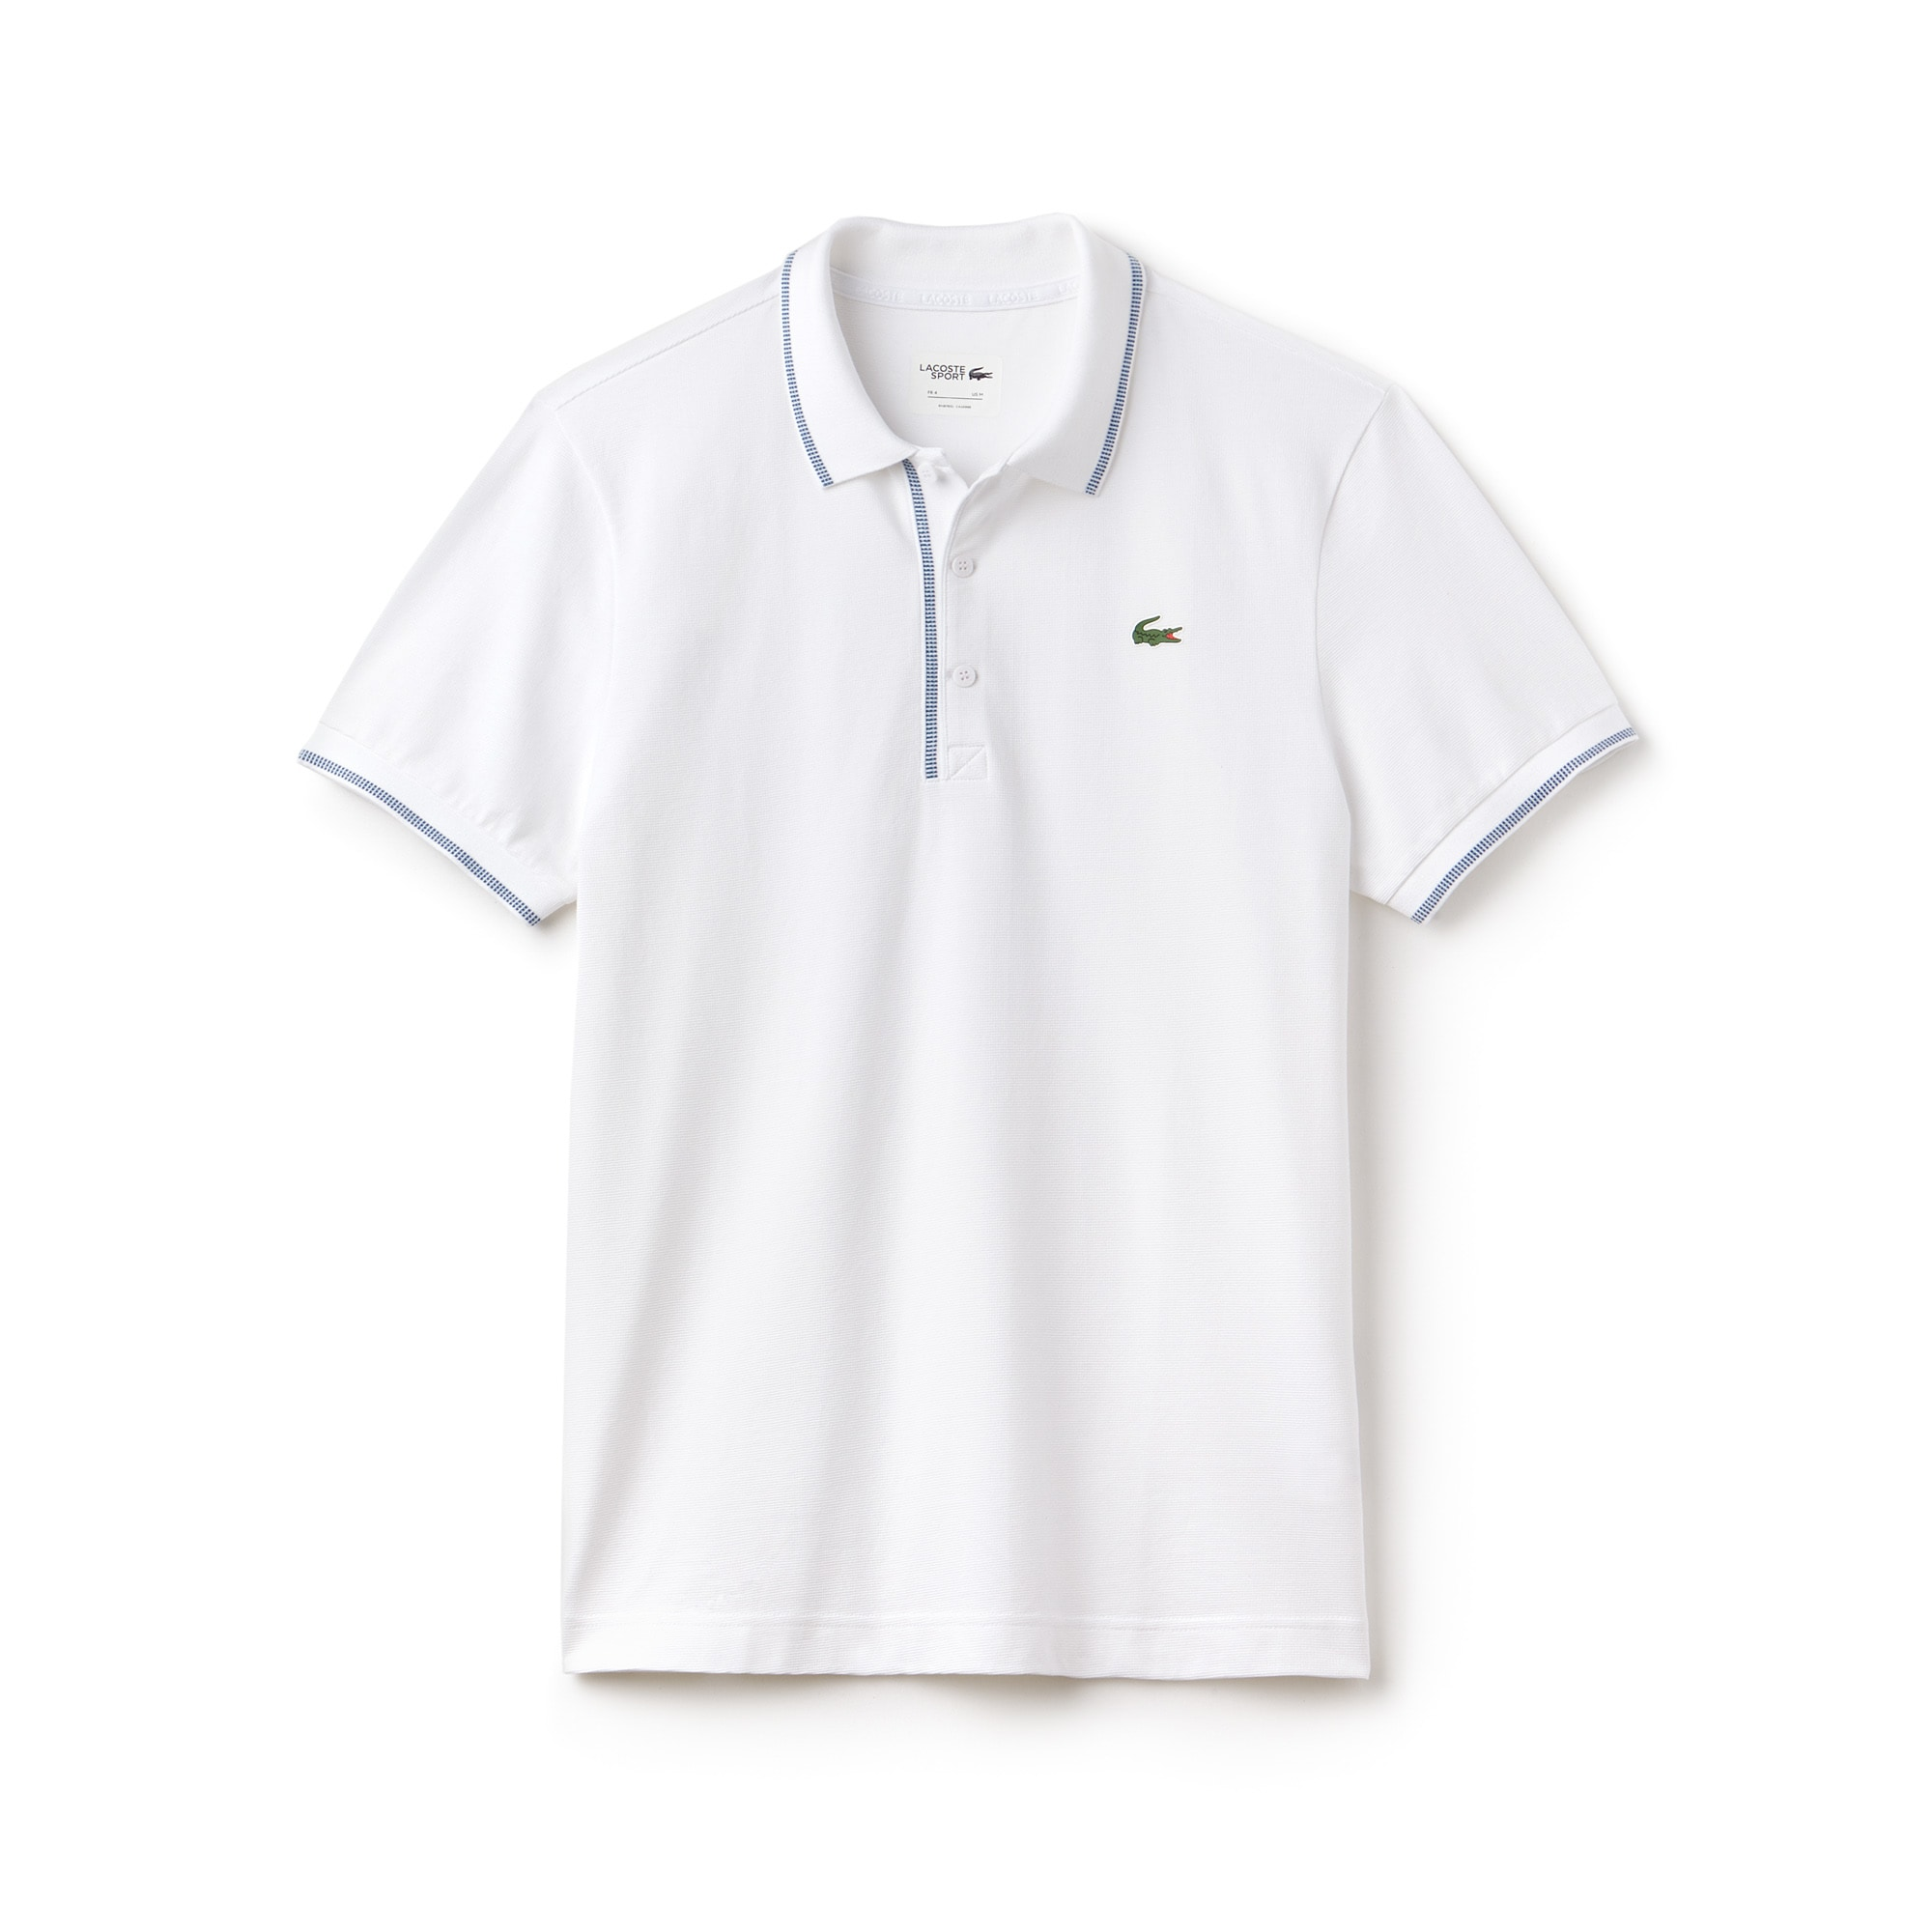 Men's Lacoste SPORT Piped Ultra-Light Cotton Golf Polo